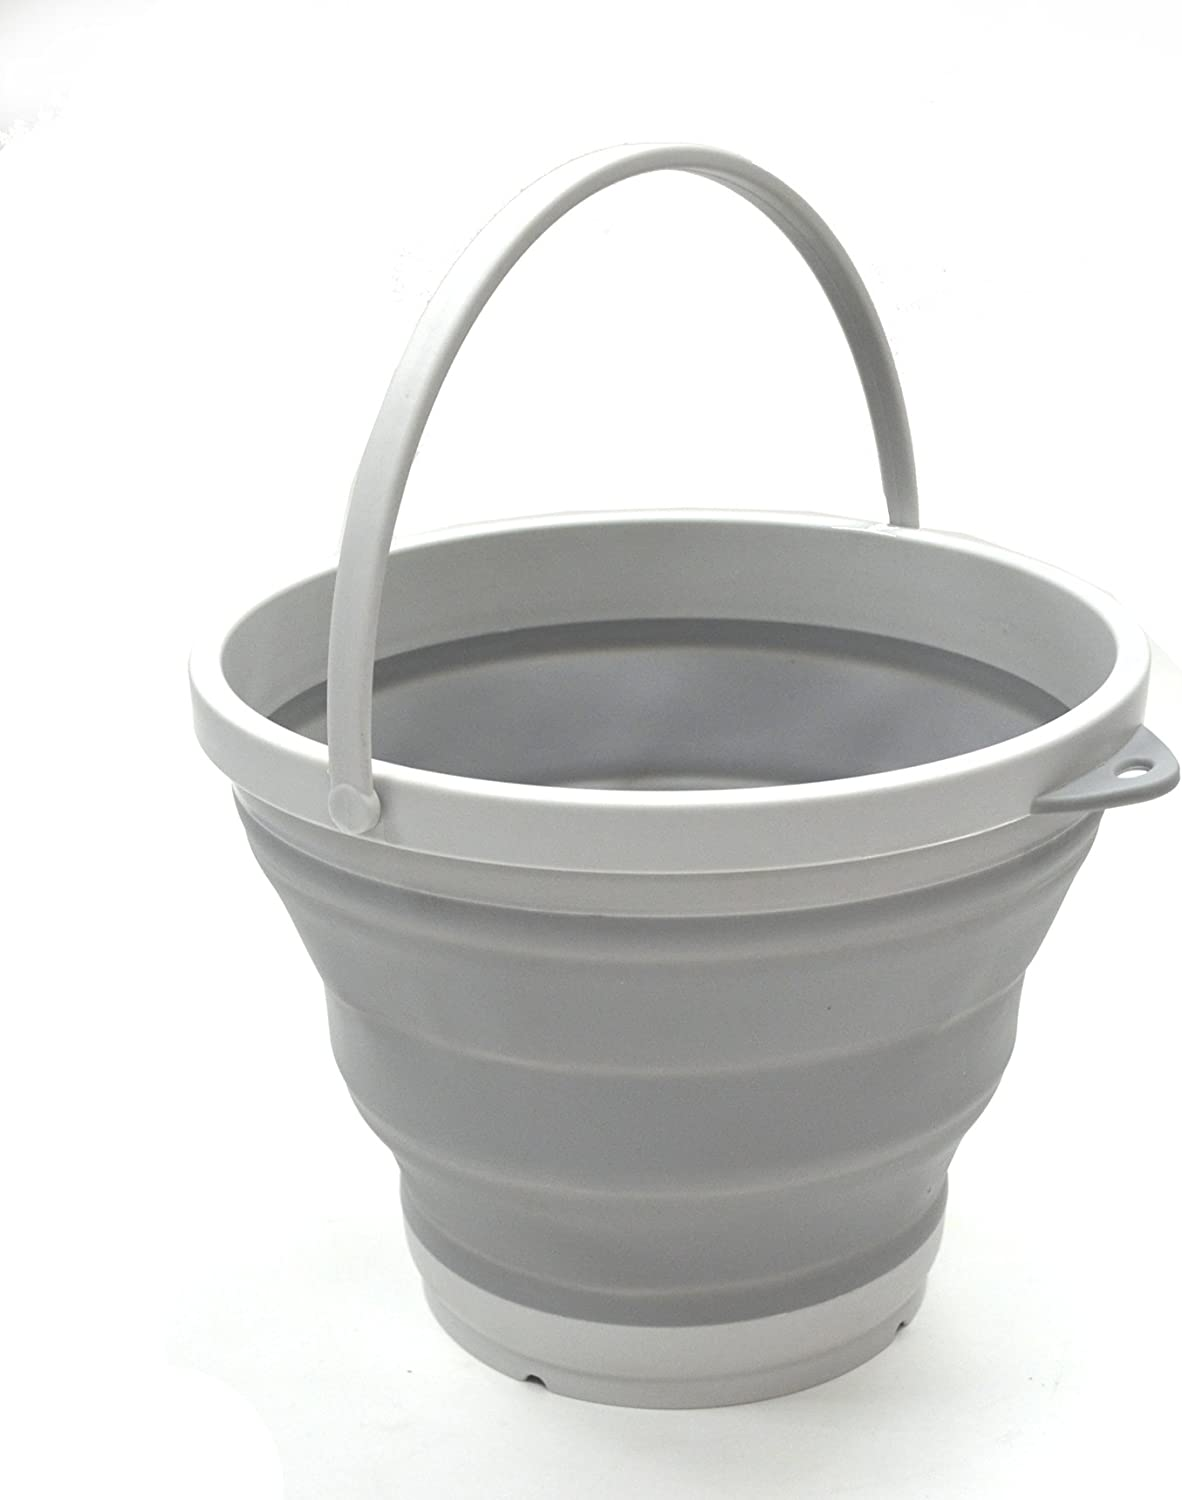 Foldable Round Tub Size 28cm Dia Space Saving Outdoor Waterpot SAMMART Collapsible Plastic Bucket Portable Fishing Water Pail 1, Grey